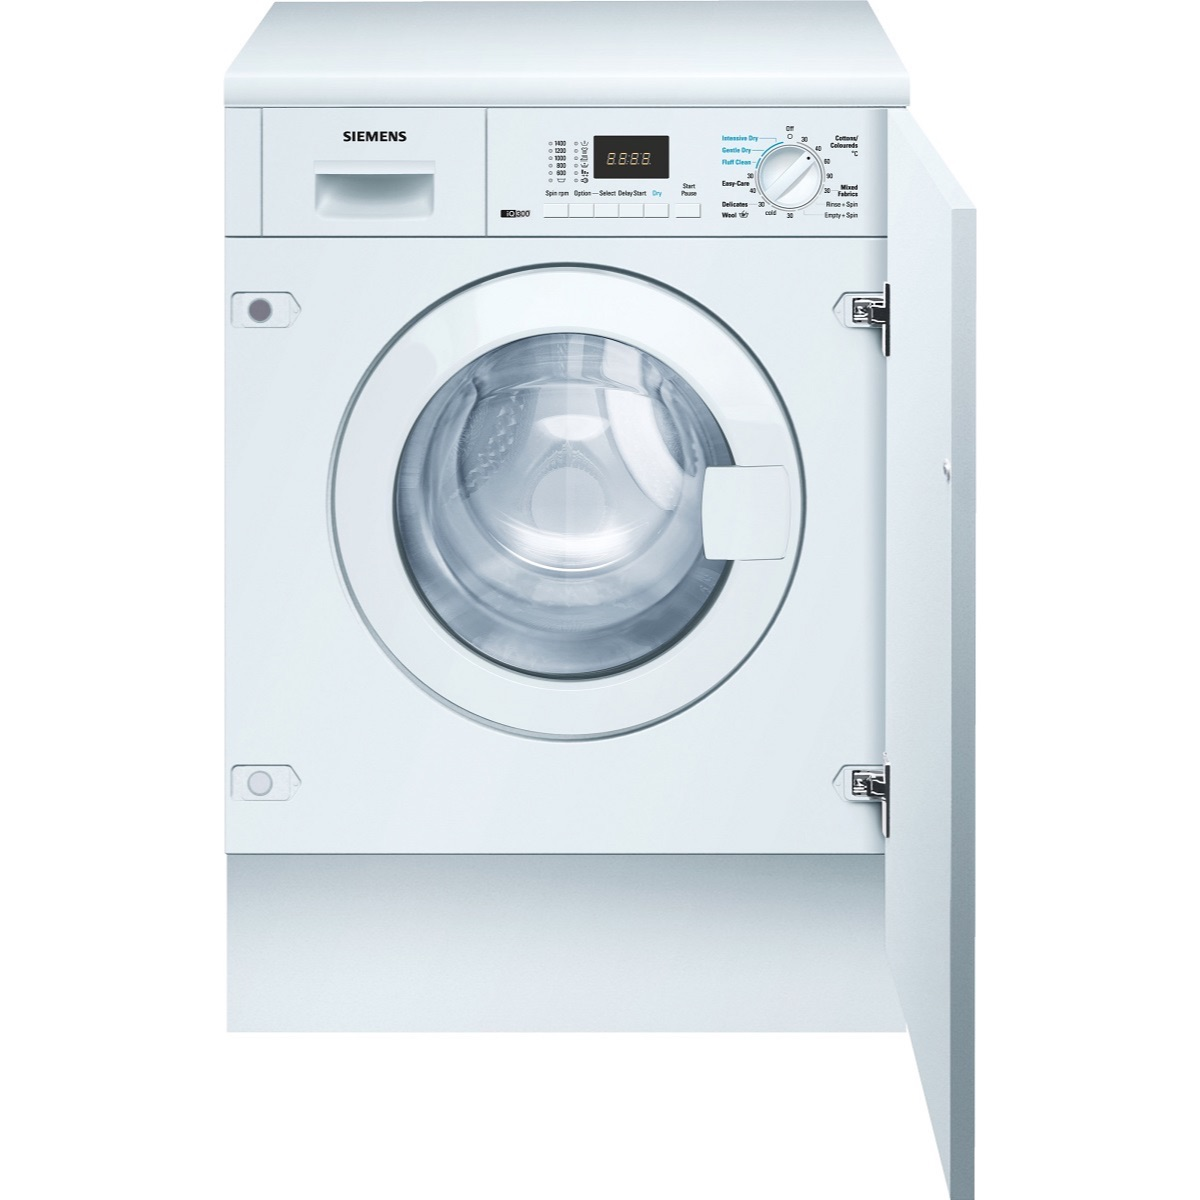 Siemens Wk14d320gb 01 Tripped Electrics When Dryer Put On Washing Machine Wiring Diagram Of Your Unit And Also A Link To The Part Below It Is Possible That Motor May Have Failed But You Will Need Check These